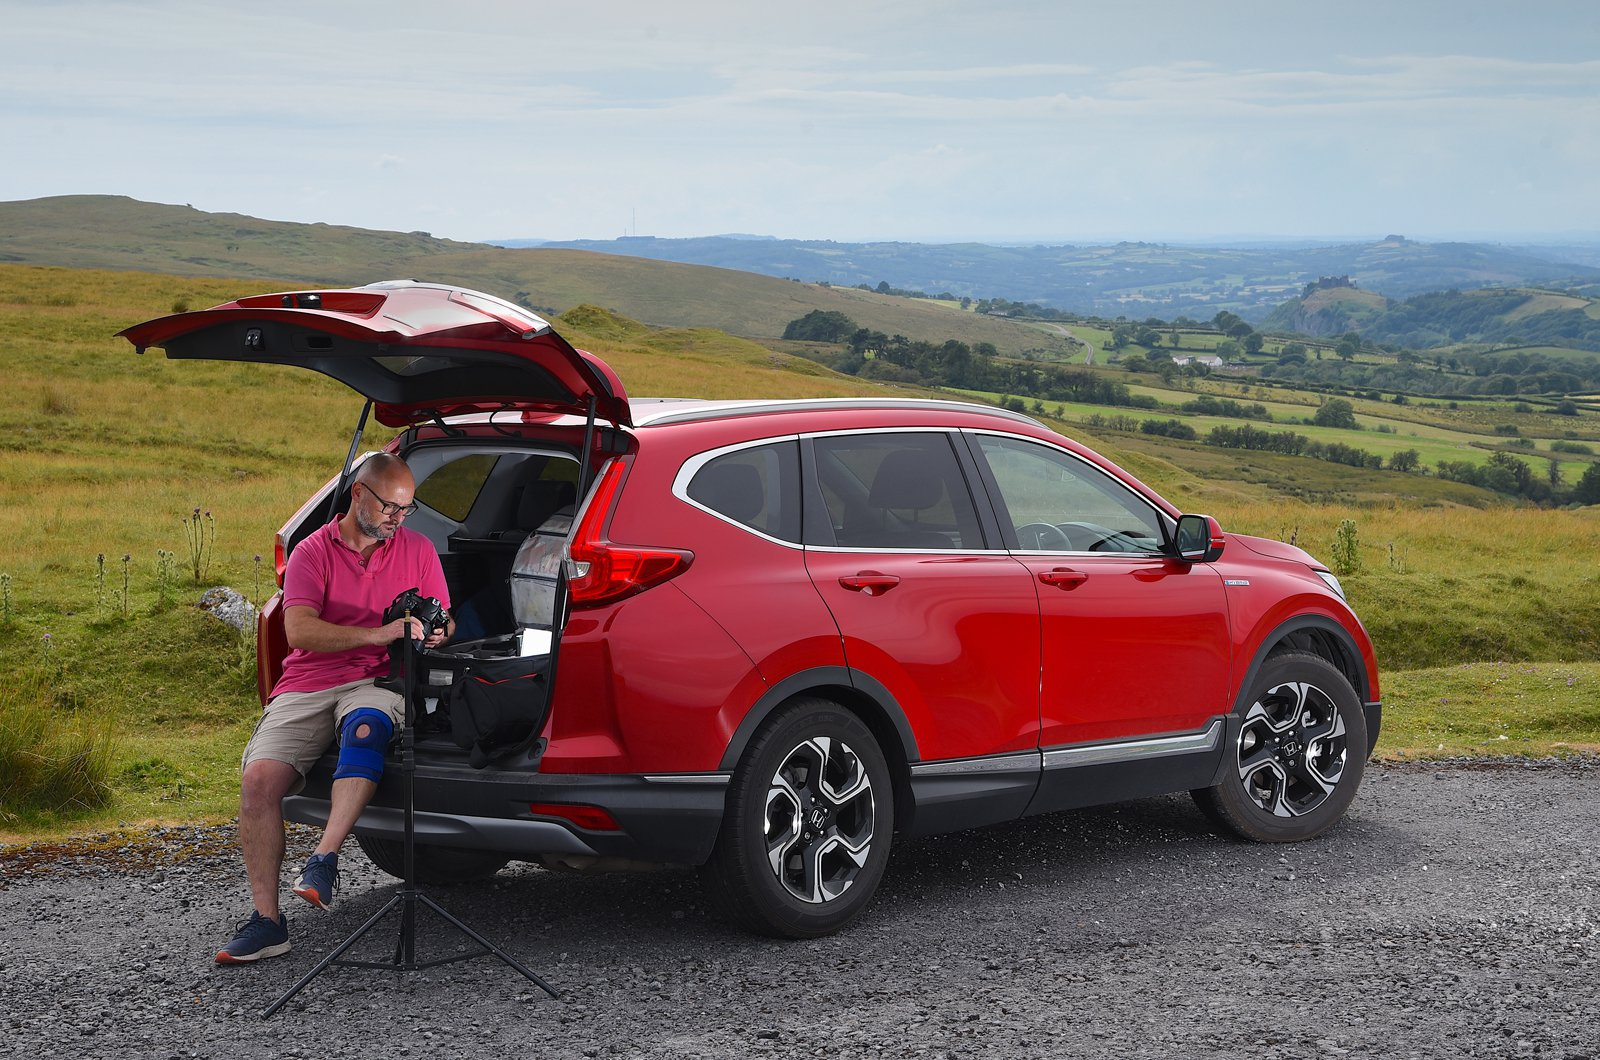 LT Honda CR-V Hybrid with photographer in the boot